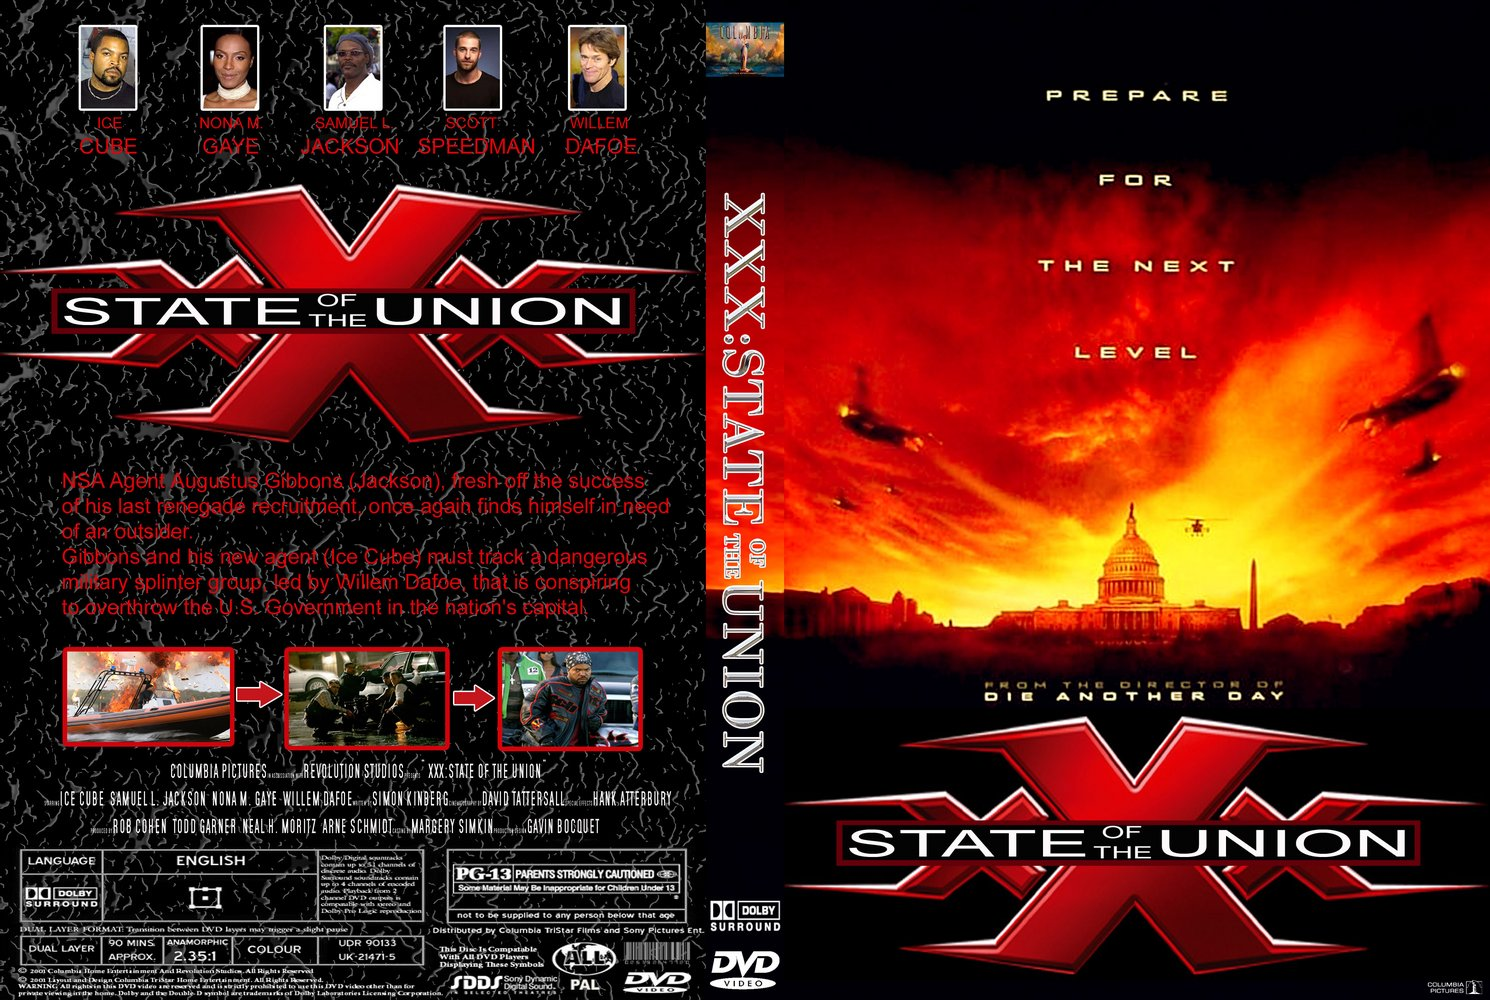 Xxx State Of The Union Dvd 117